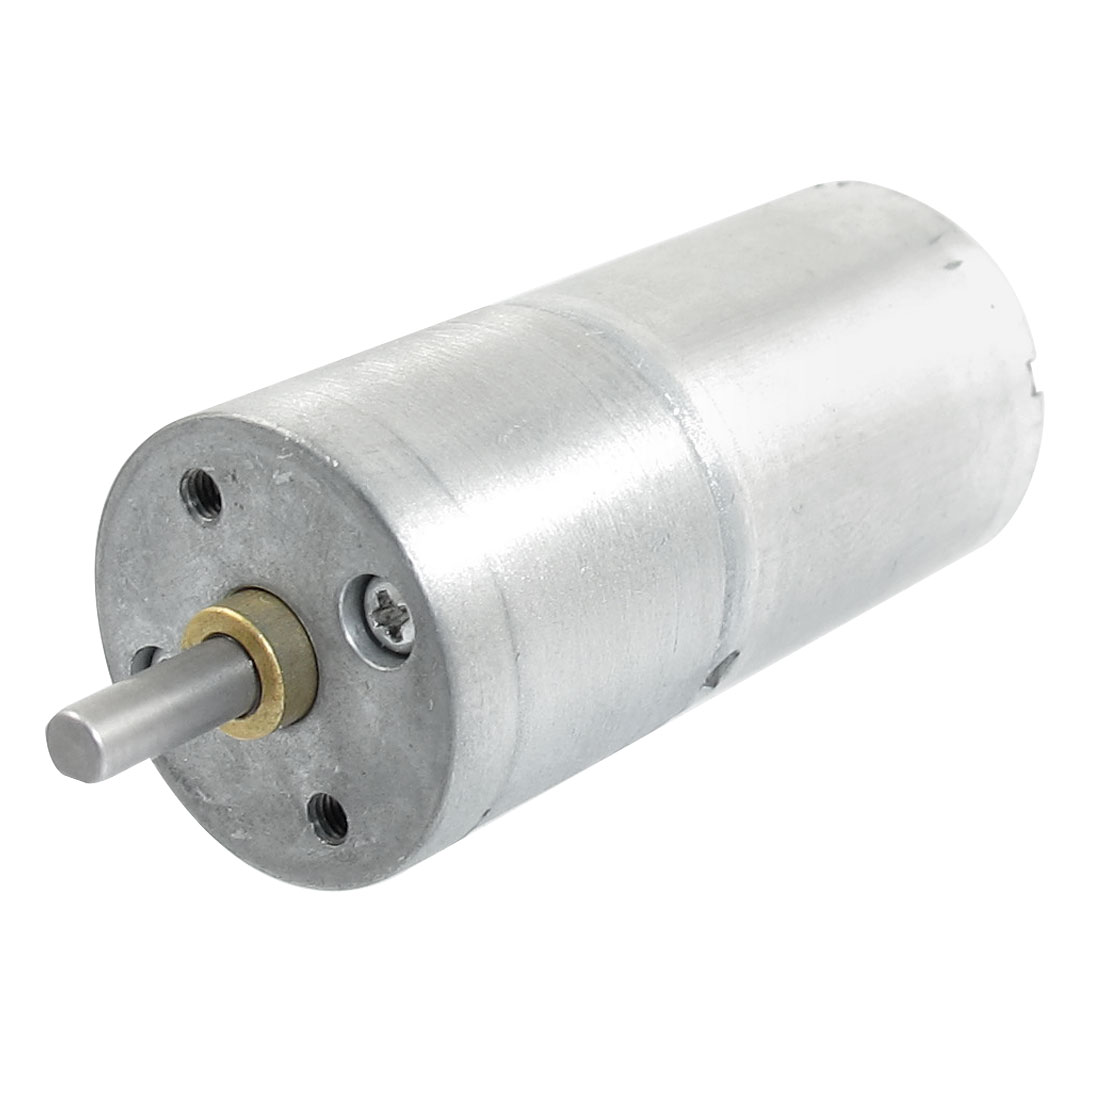 4mm-Shaft-100RPM-12V-90N-CM-Torque-Electric-Reduce-DC-Geared-Box-Motor